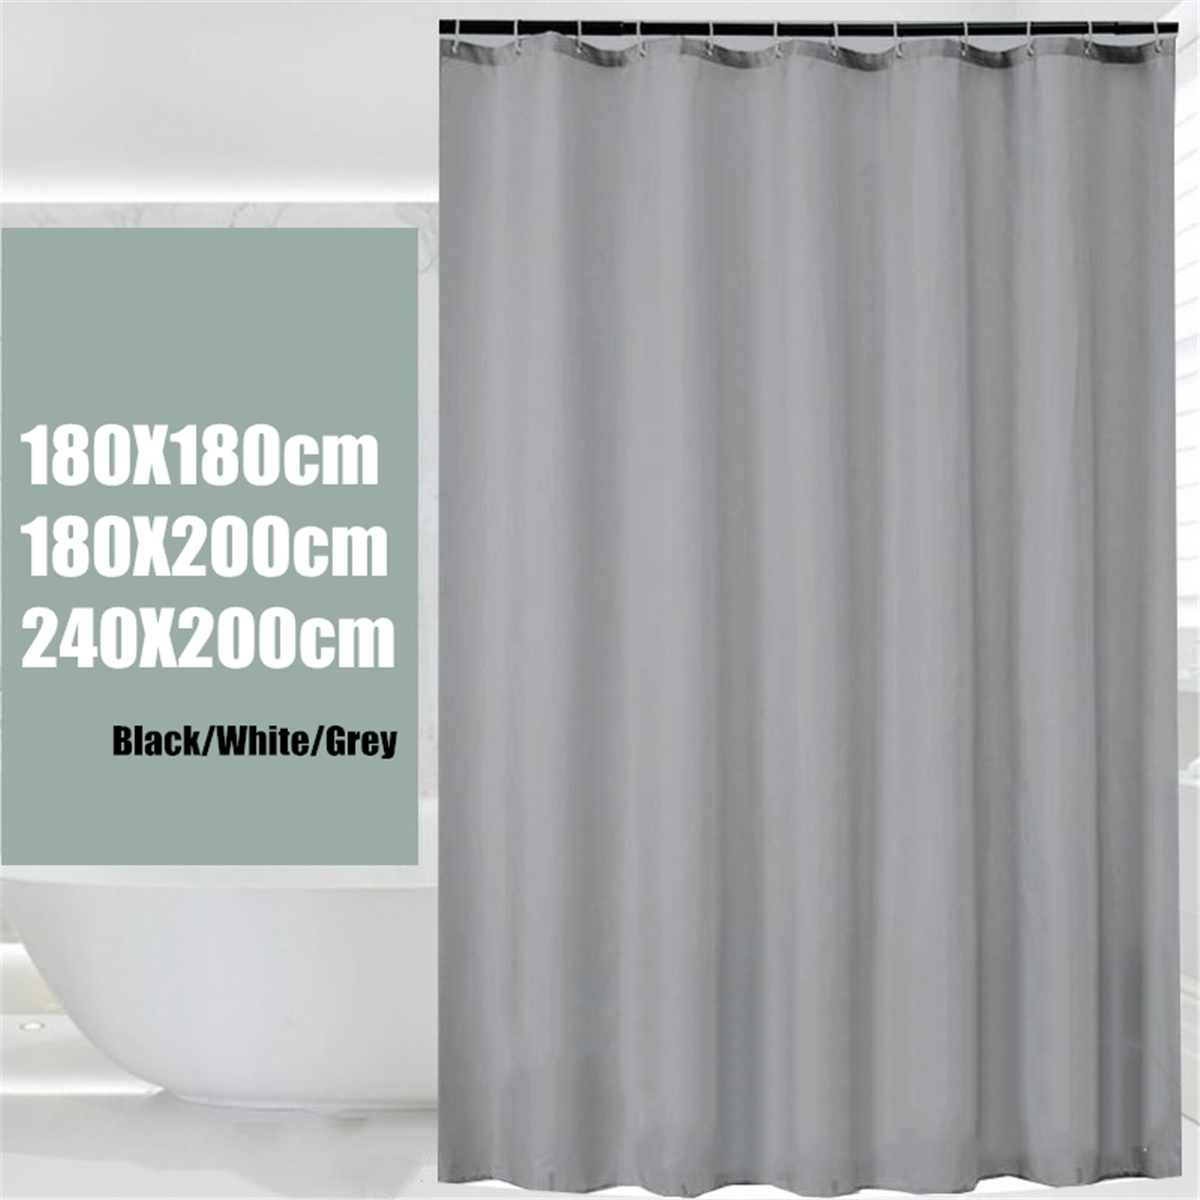 Waterproof Polyester Fabric Shower